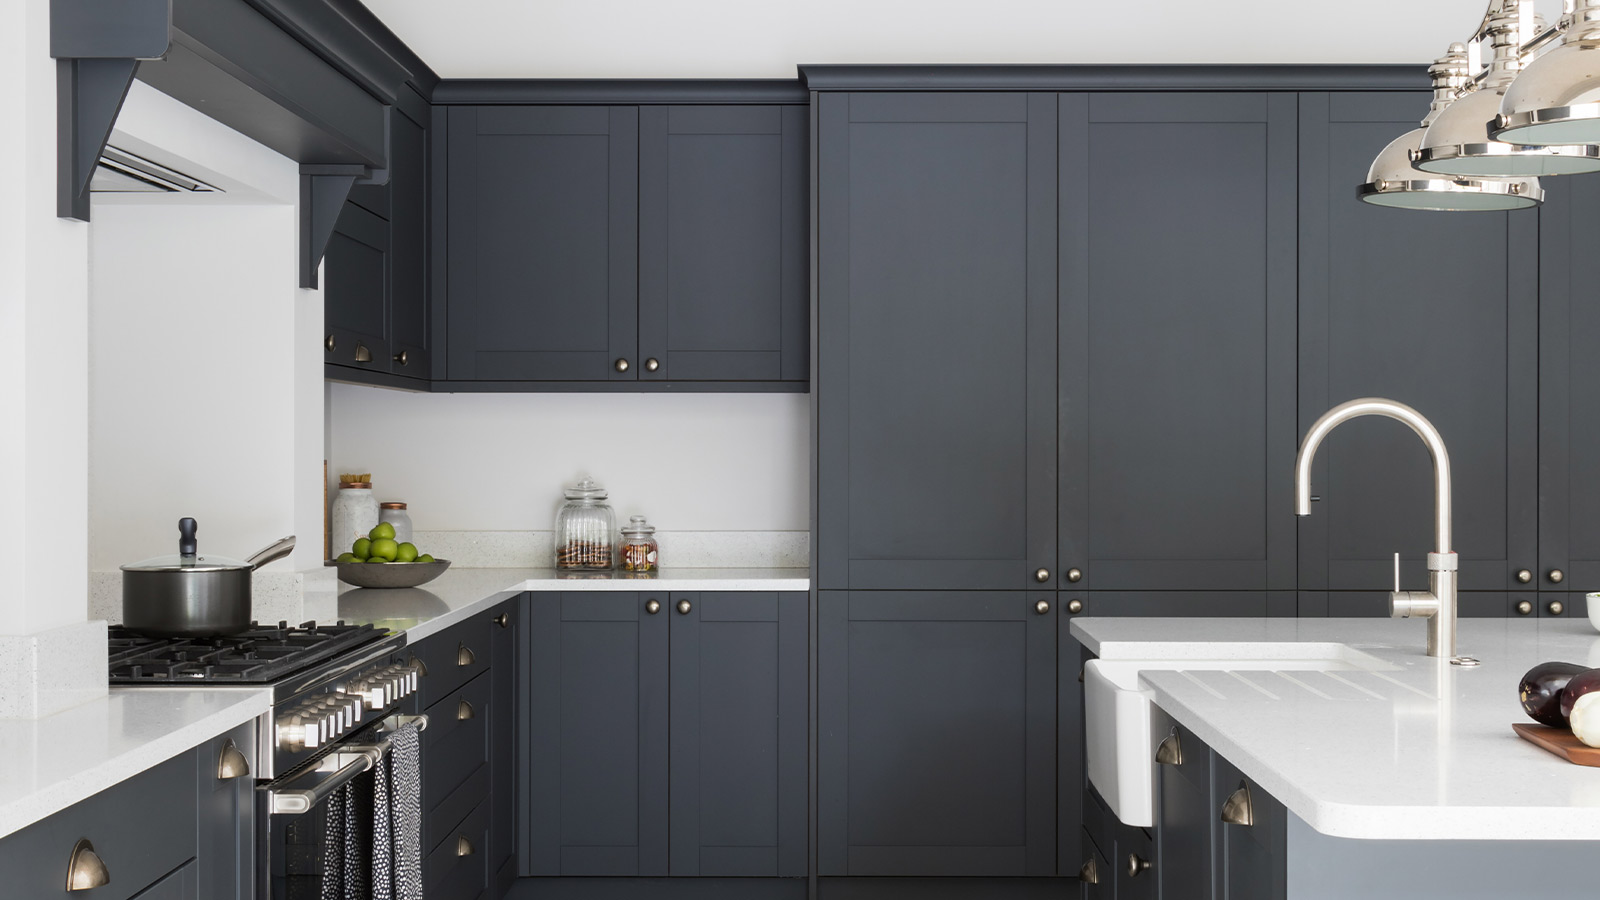 Grey kitchen cabinets in a classic shaker kitchen